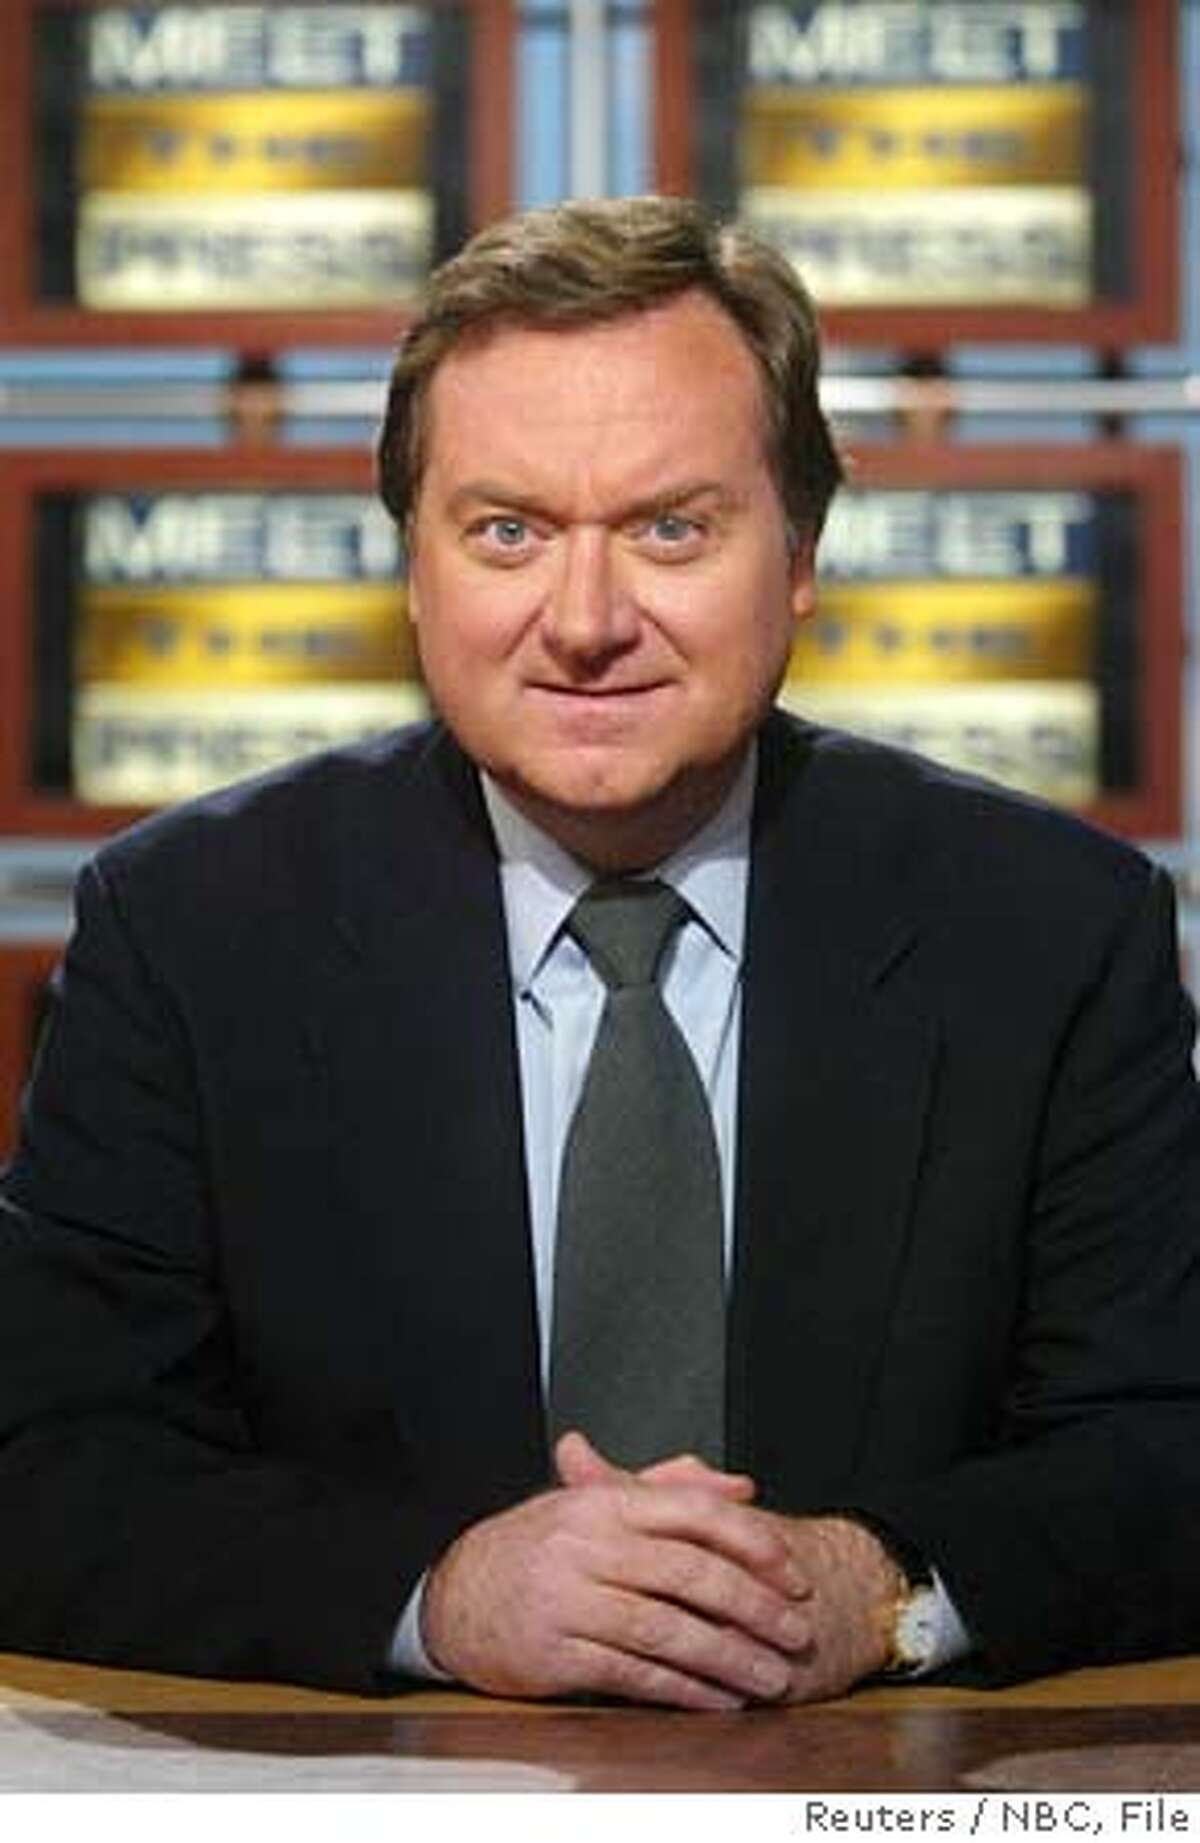 """A federal judge ordered that Tim Russert of NBC's """"Meet the Press"""" and Matthew Cooper of Time magazine must testify in the investigation into whether the Bush administration illegally leaked a covert CIA officer's name to the media. The judge rejected requests to quash subpoenas to Russert, shown in a 2004 photo, and Cooper for violating their First Amendment rights. NO ARCHIVES REUTERS/Nbc/Handout Ran on: 08-10-2004 Tim Russert of Meet the Press was interviewed by a special counsel Saturday, NBC said. Ran on: 08-10-2004 0"""